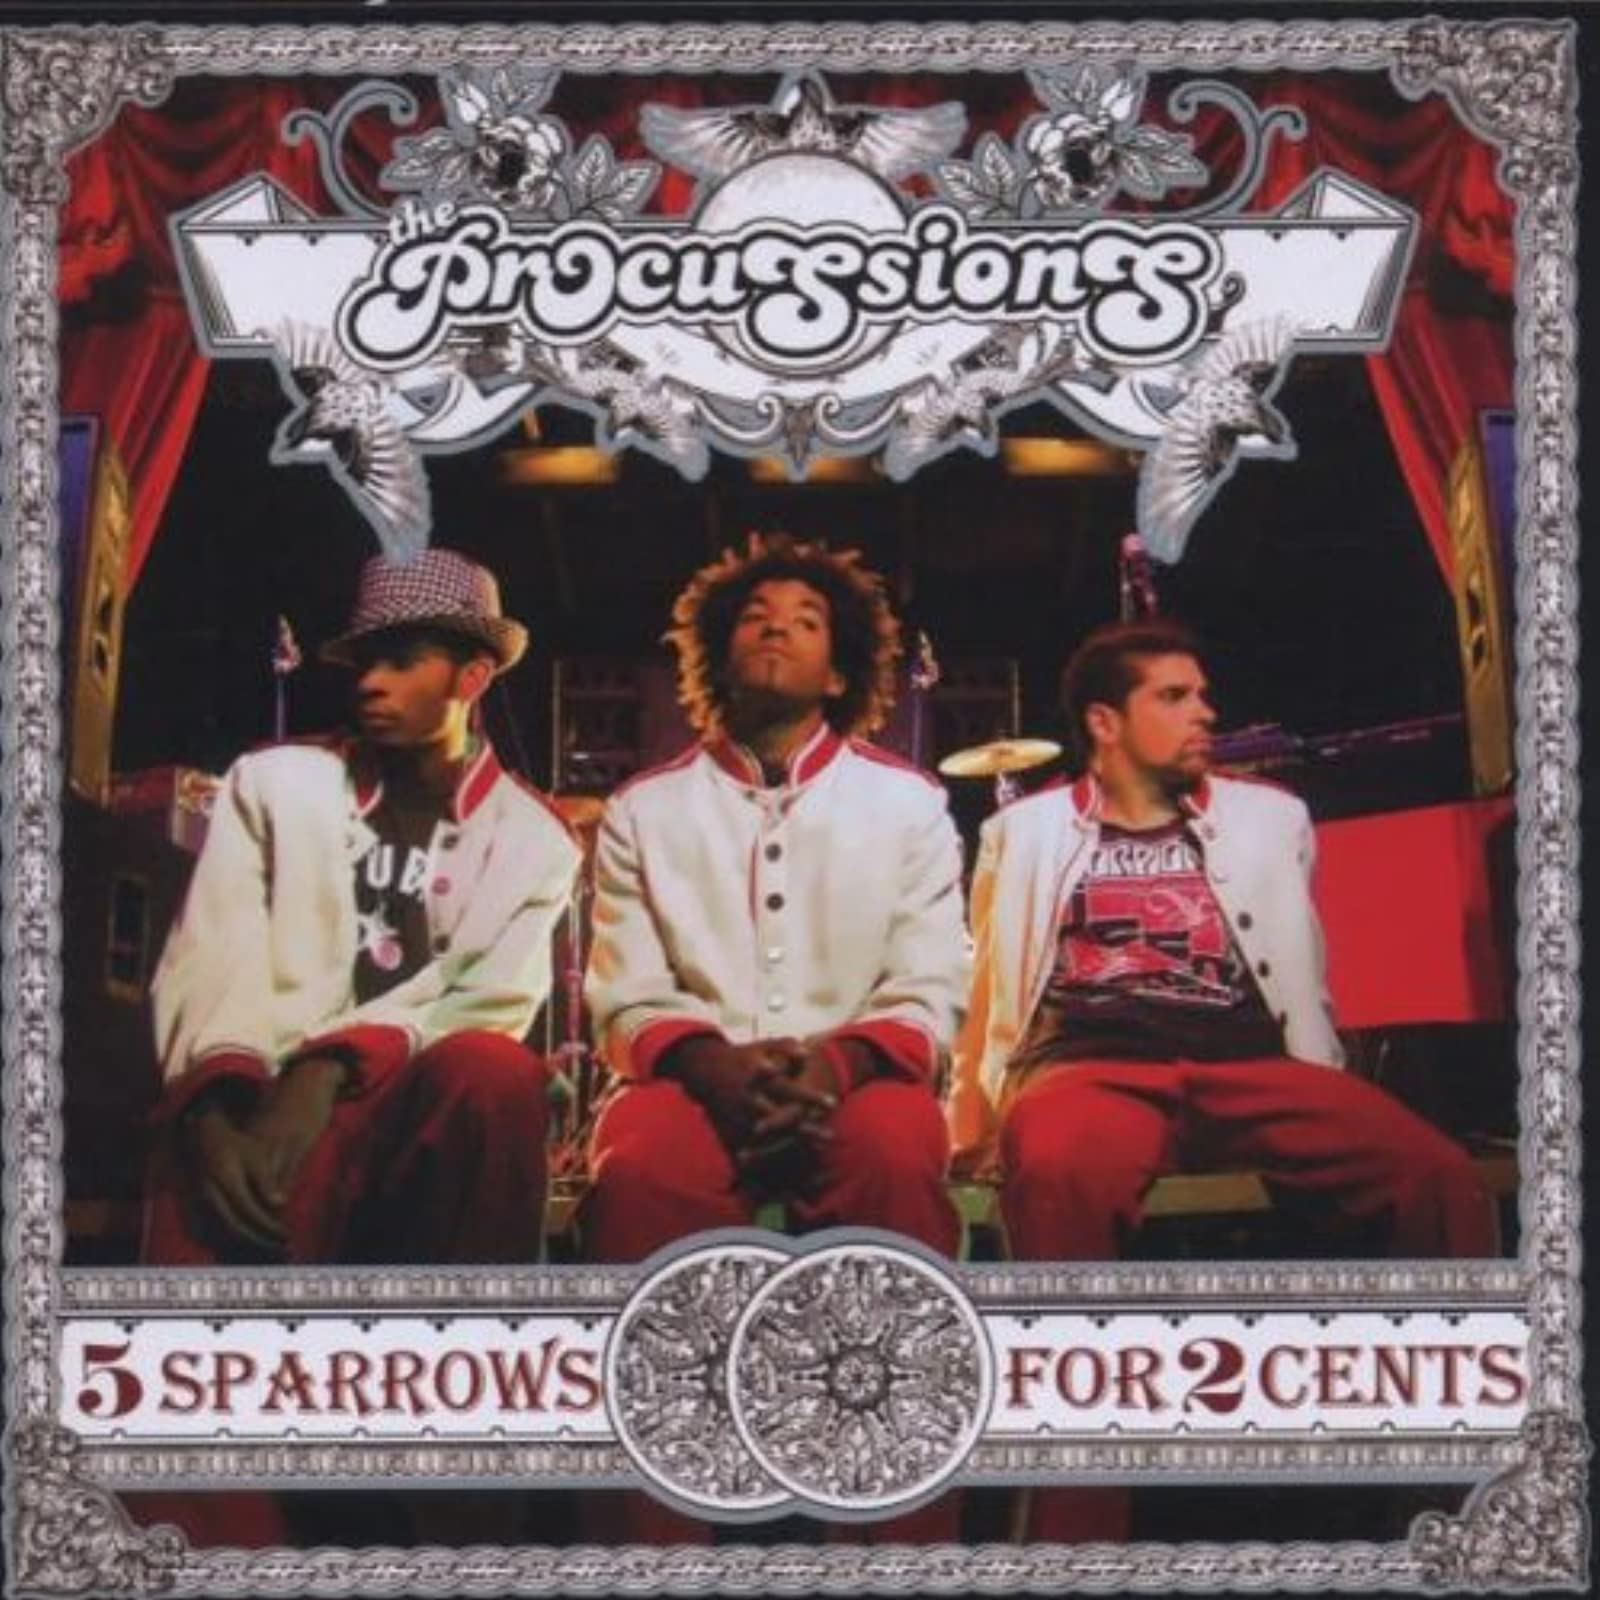 5 Sparrows For 2 Cents By The Procussions On Audio CD Album 2006 Rap